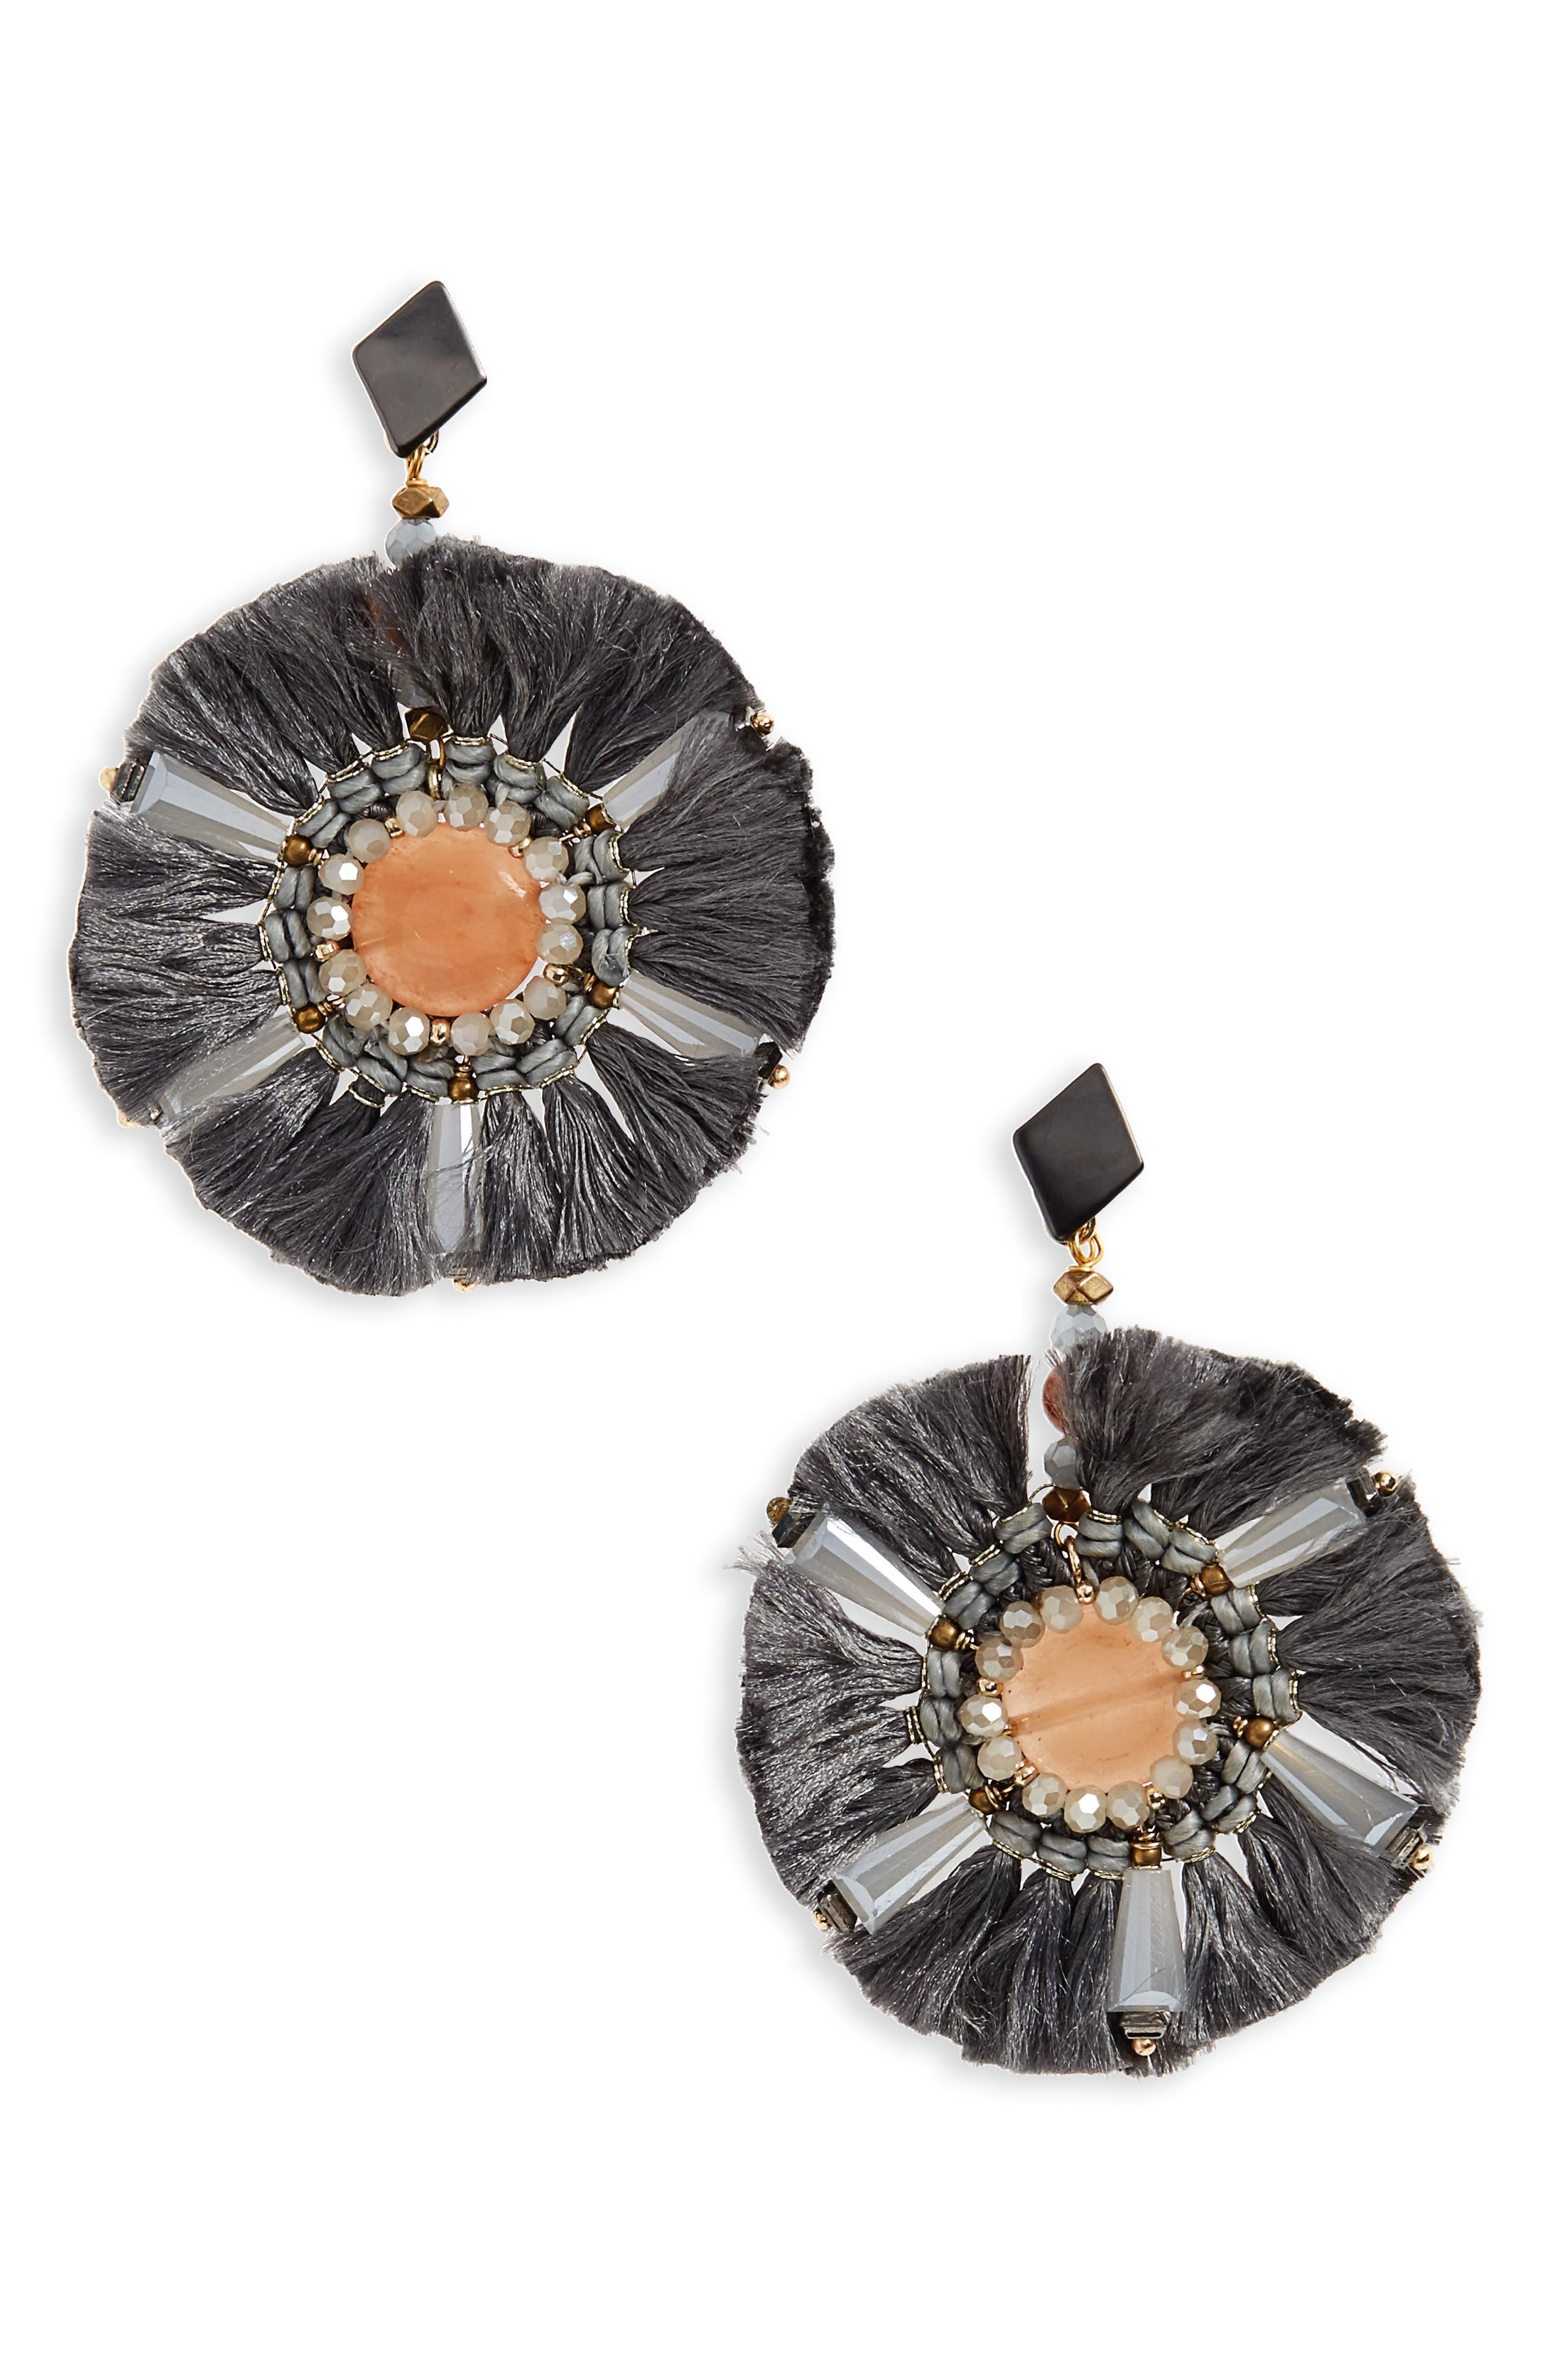 Agate & Fringe Statement Earrings,                         Main,                         color, Grey